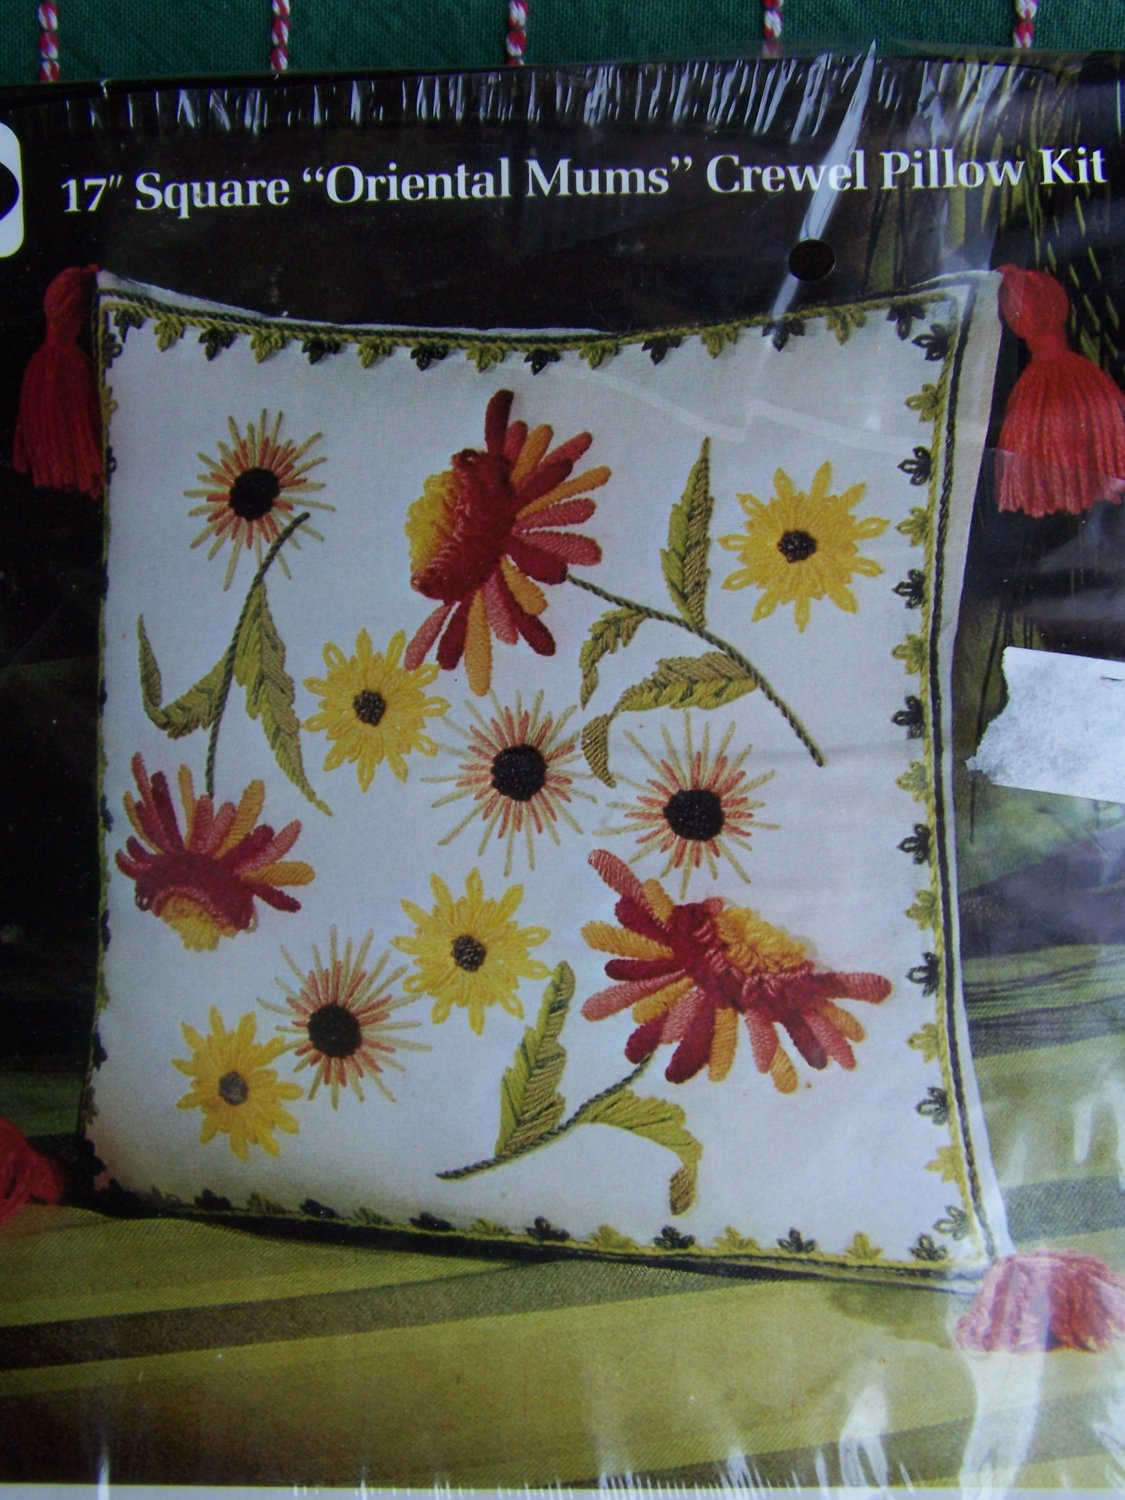 SALE Vintage Lee Wards Crewel Embroidery Pillow Kit Oriental Mums Floral Tassels